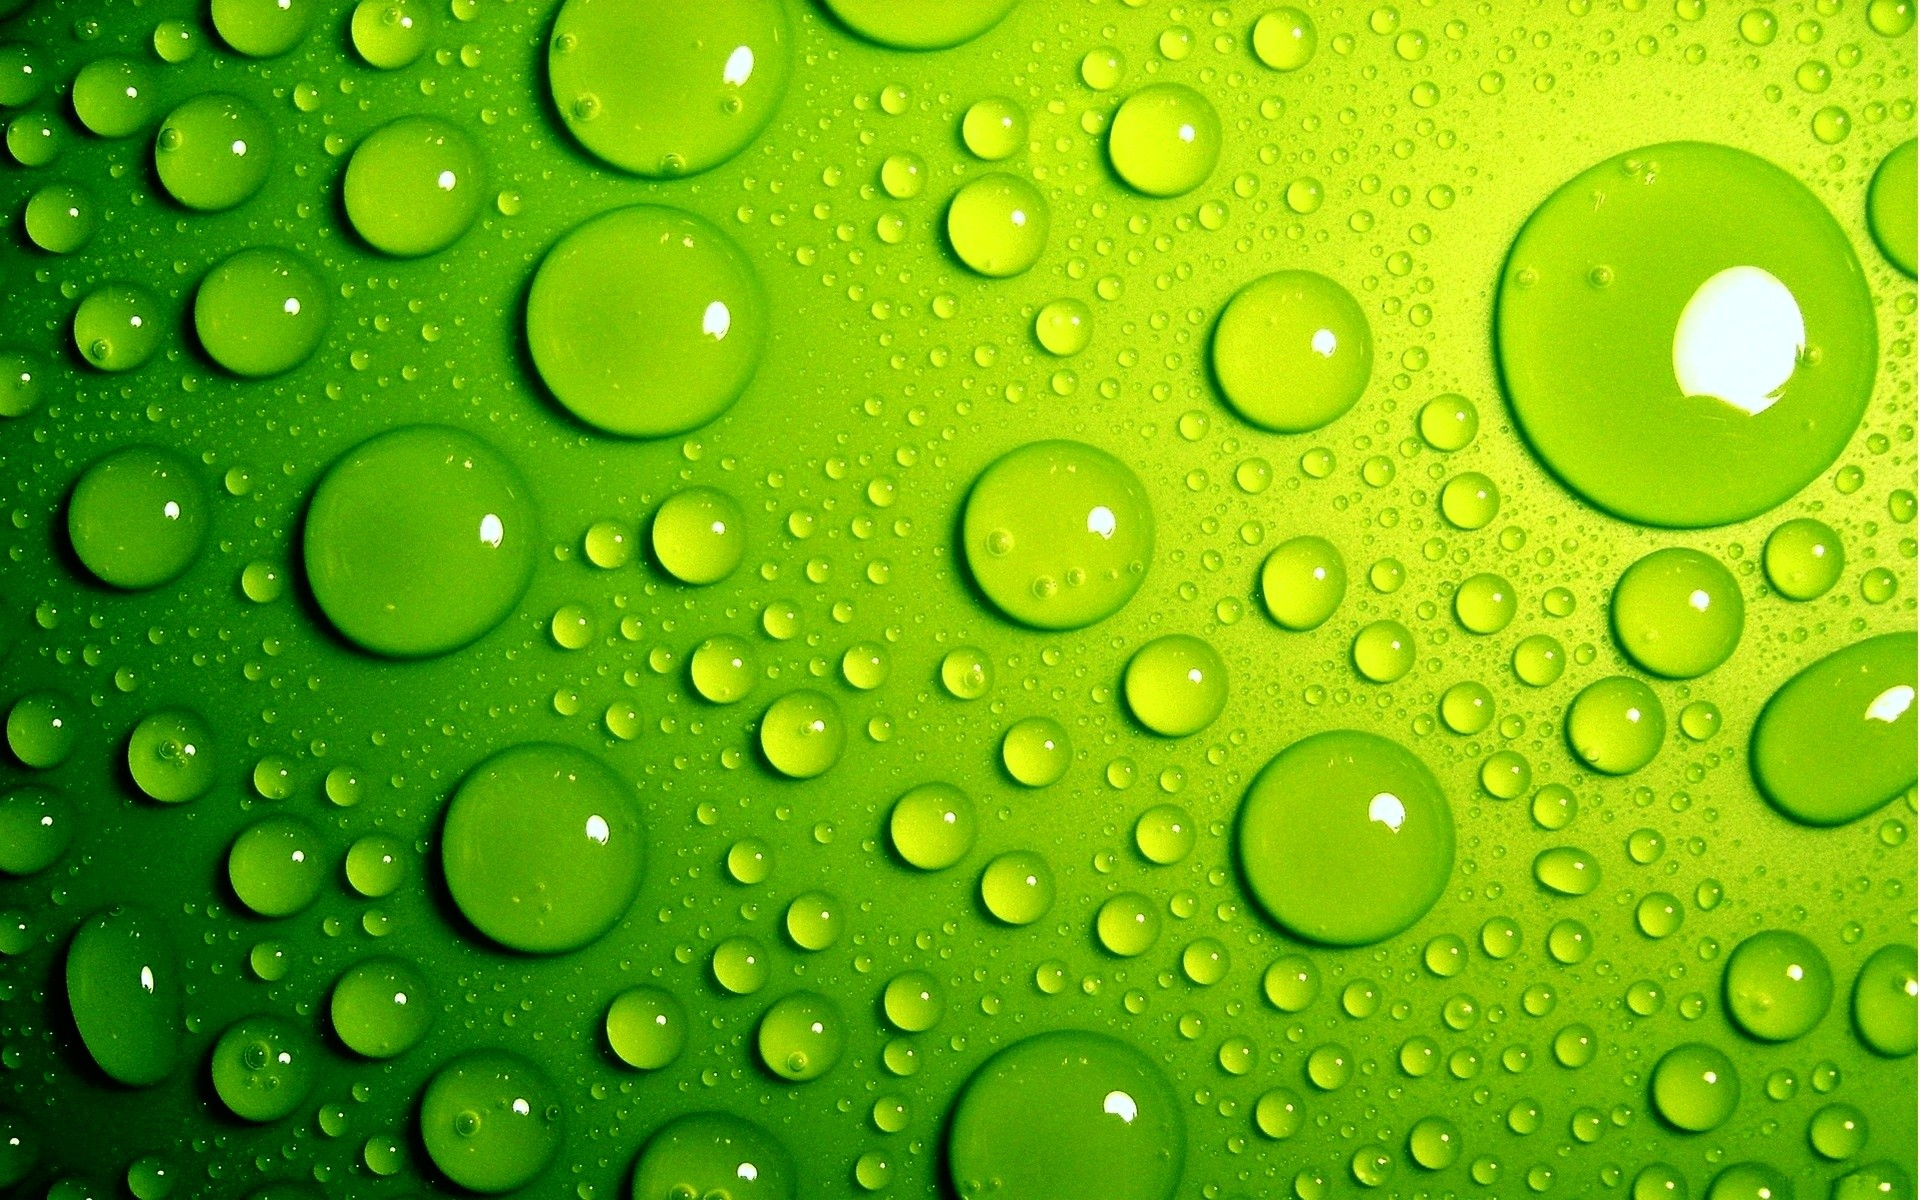 Green Background. 1680×1260. Green Bubbles